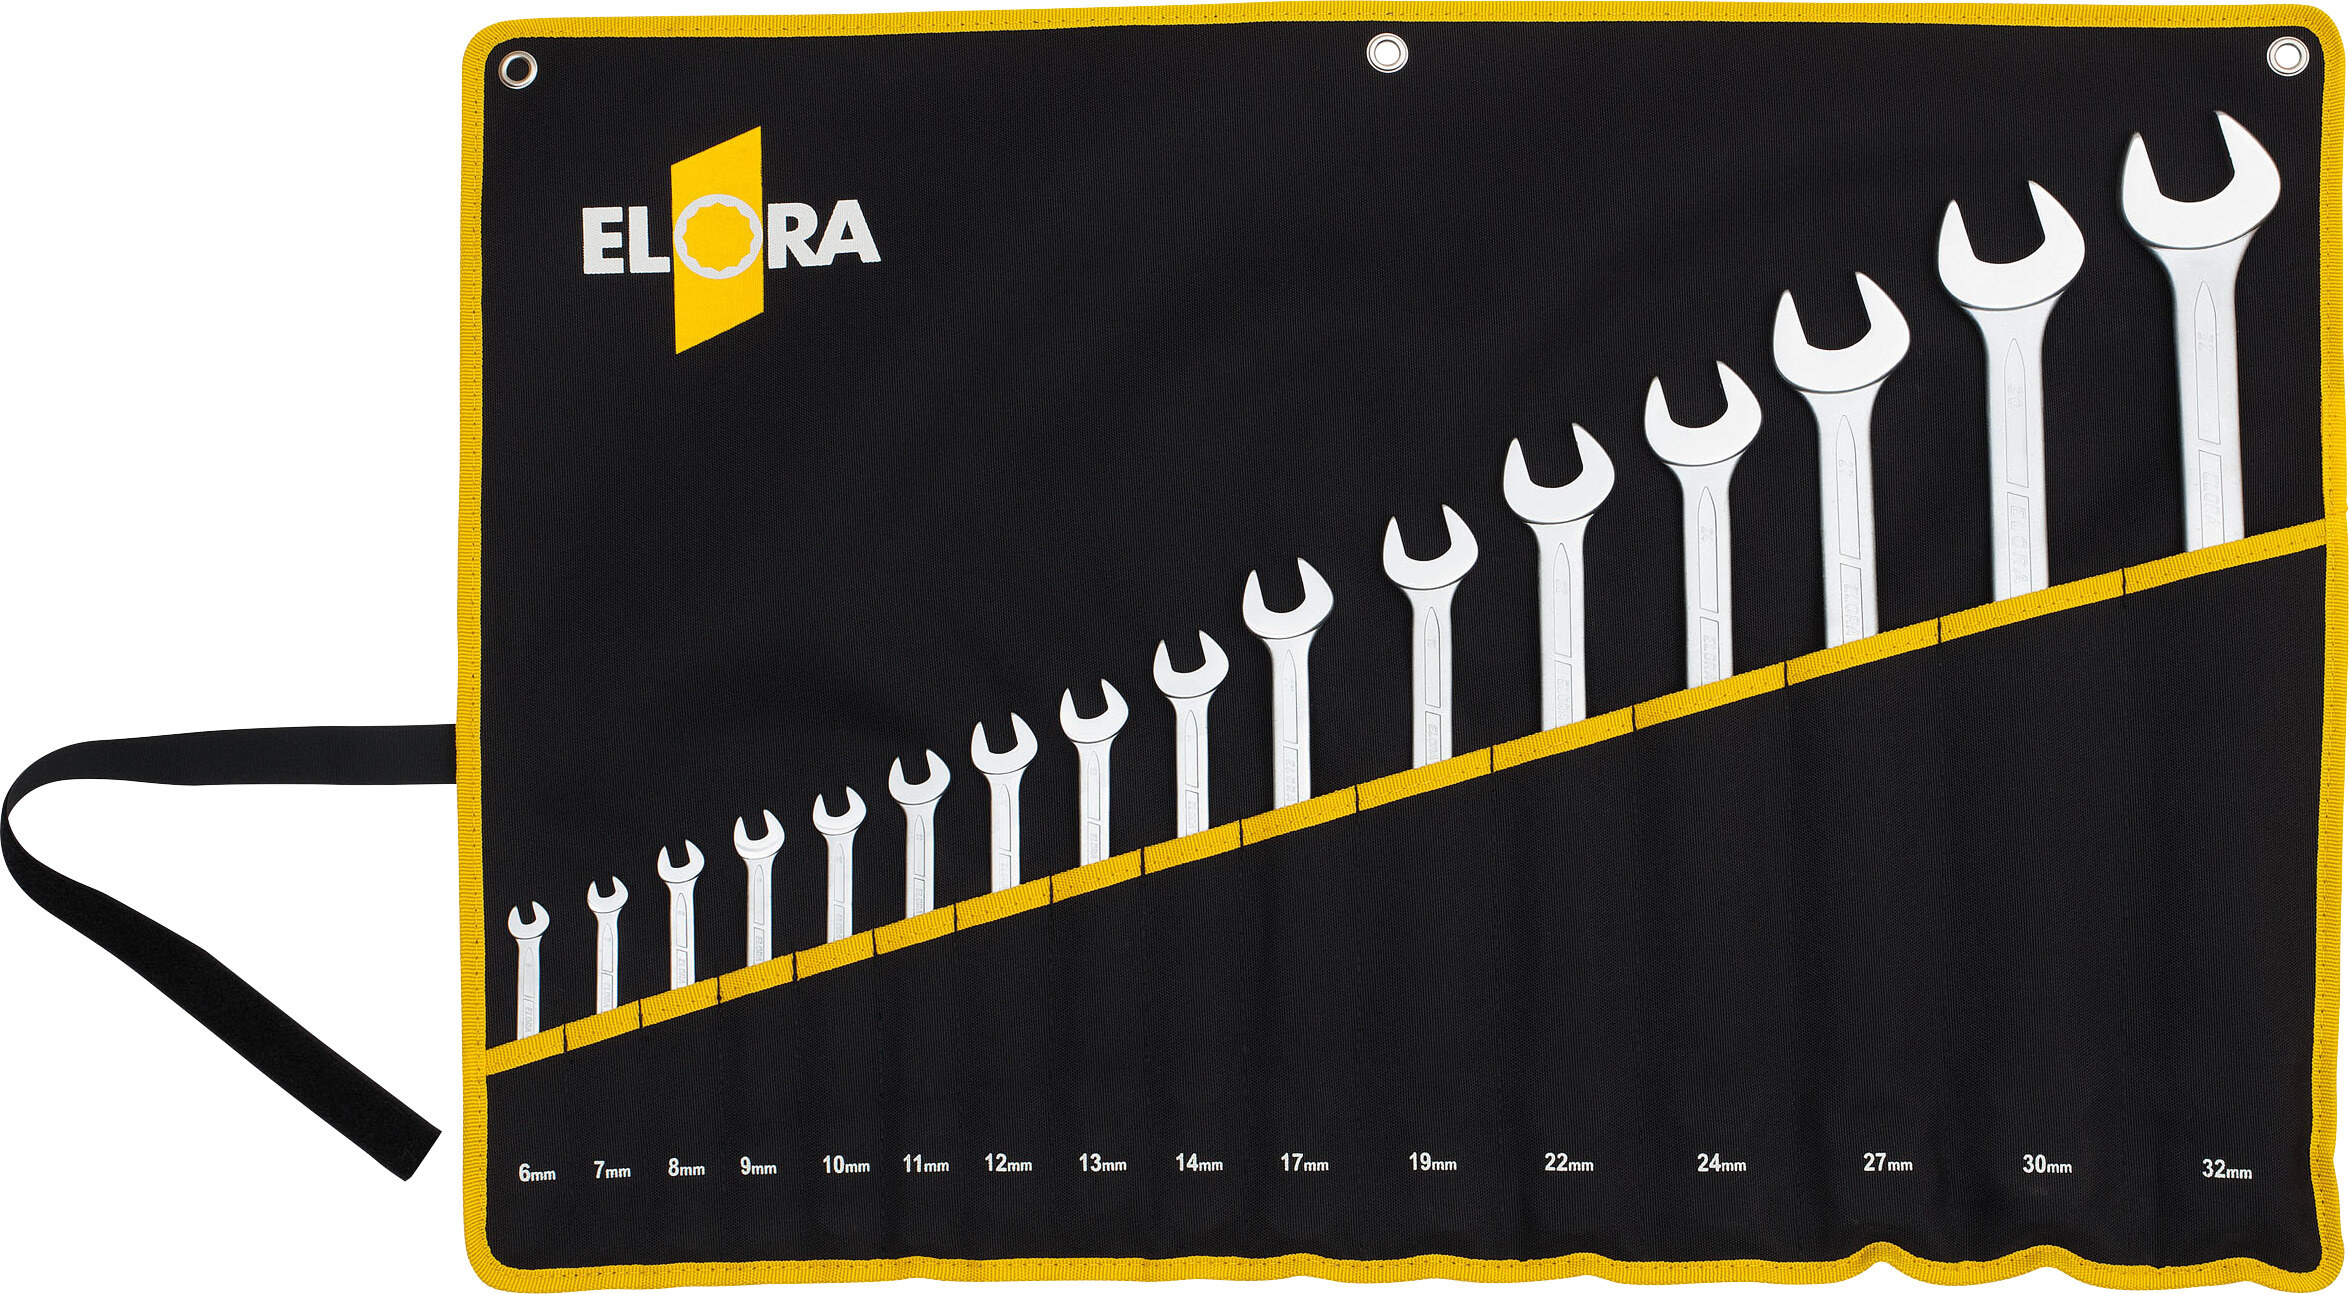 ELORA Combination Spanner Set DIN 3113, Form B, 16-pcs. 6-32 mm, ELORA-205S 16MT